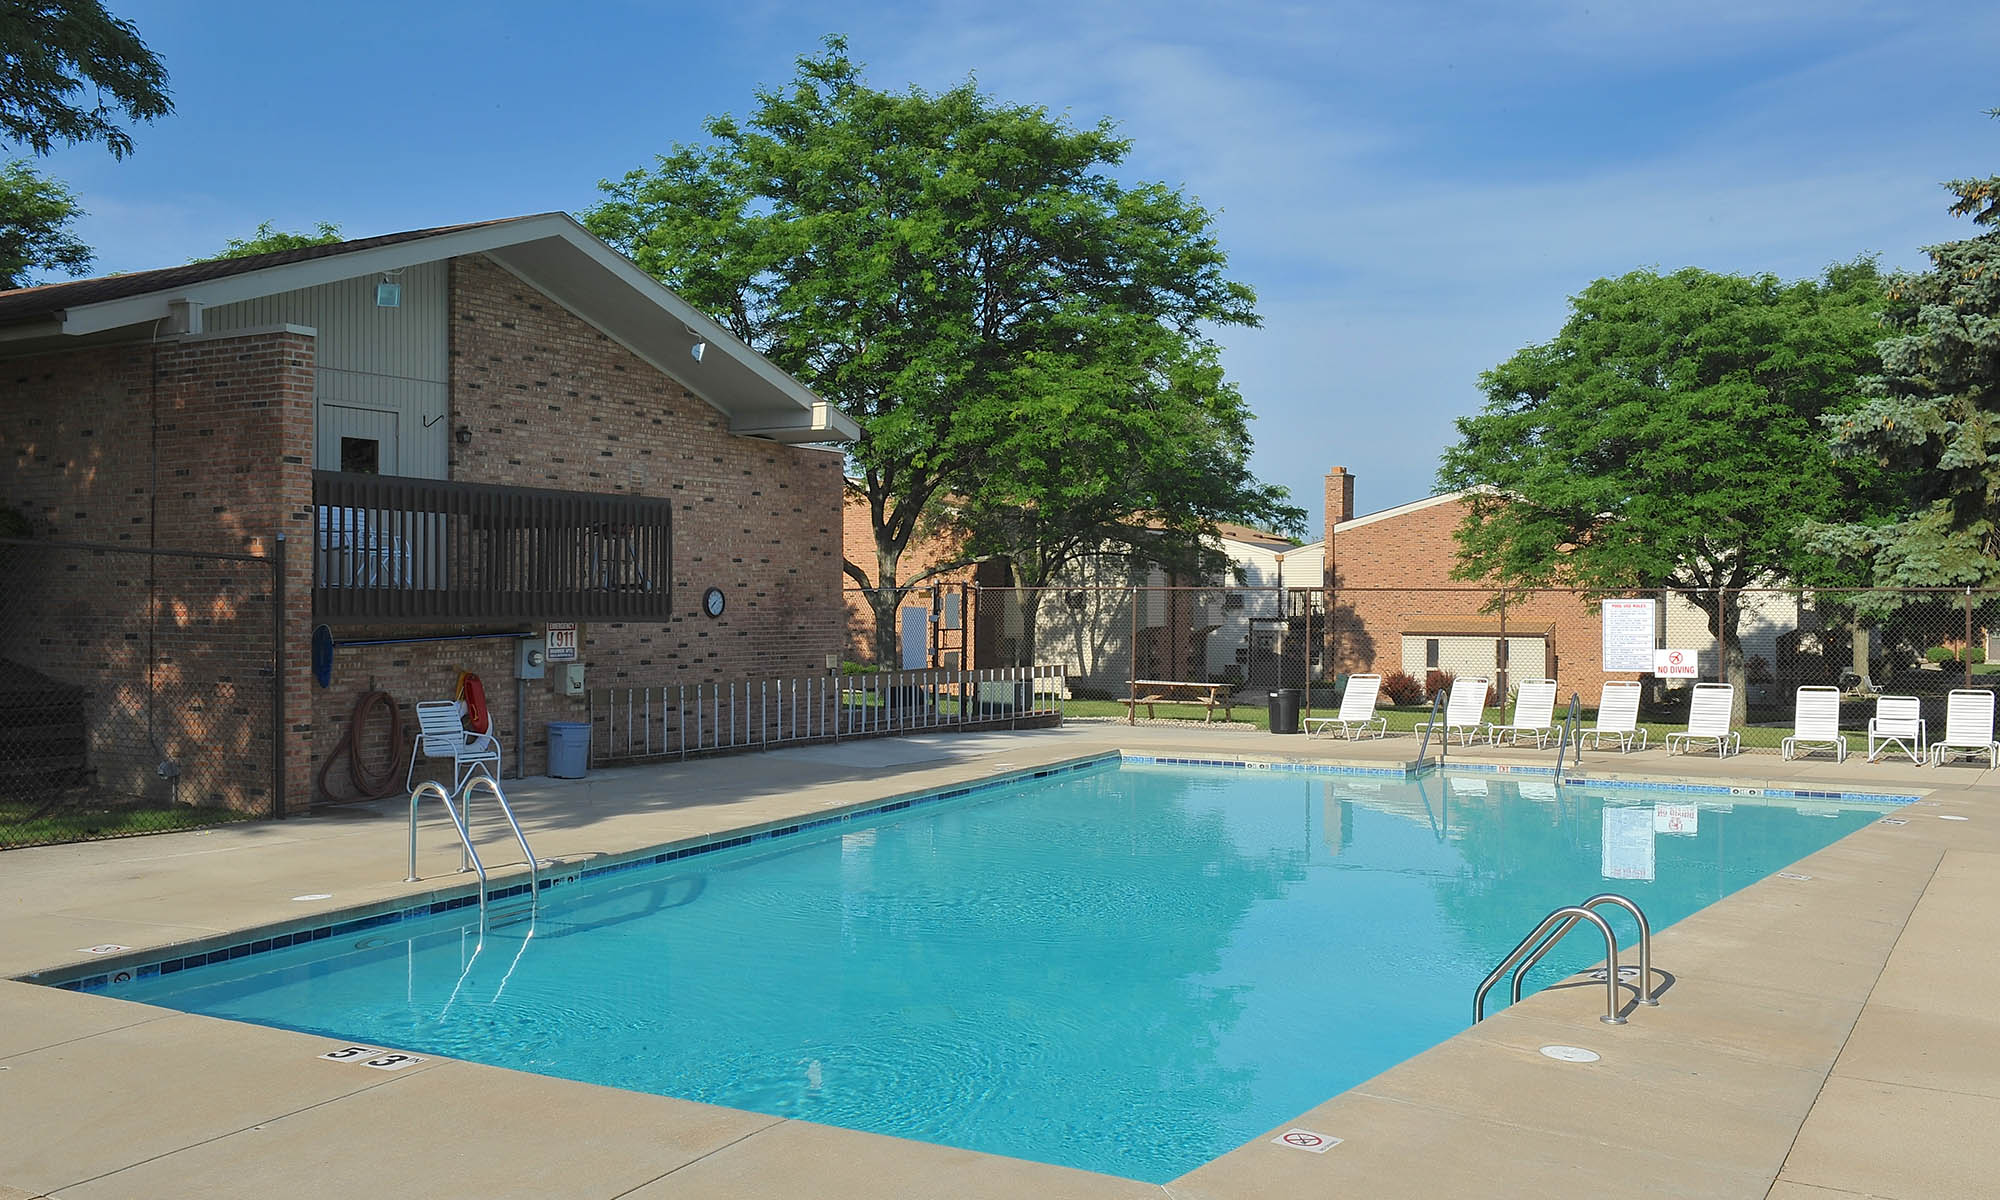 Greenfield wi apartments briarwick apartments for Garden pool apartments west allis wi